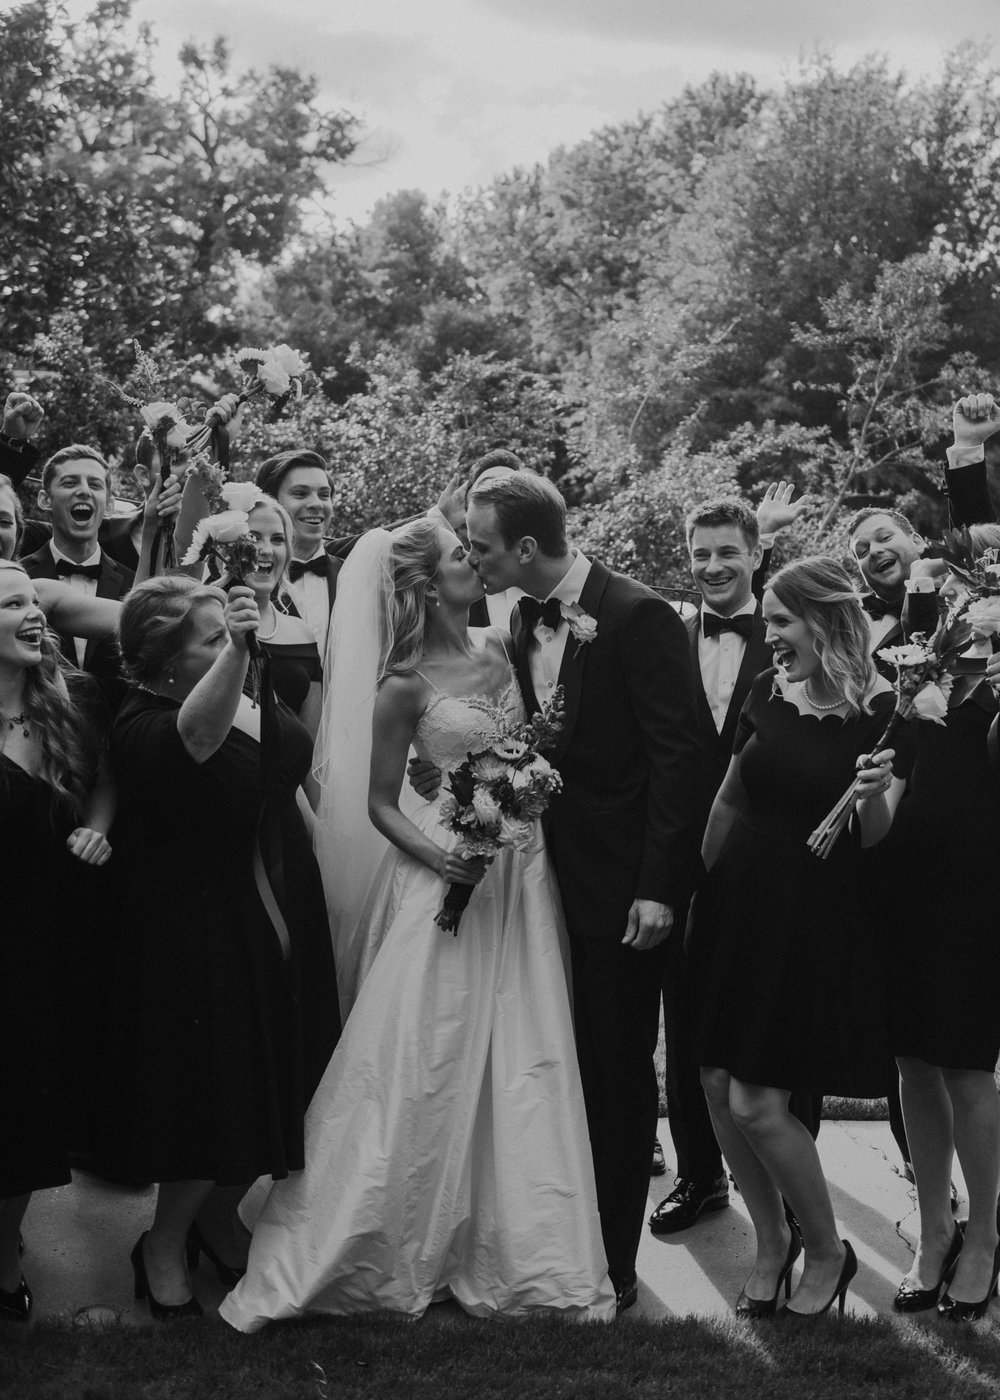 wedding day timeline advice how much time it takes photography photographer video-14.jpg